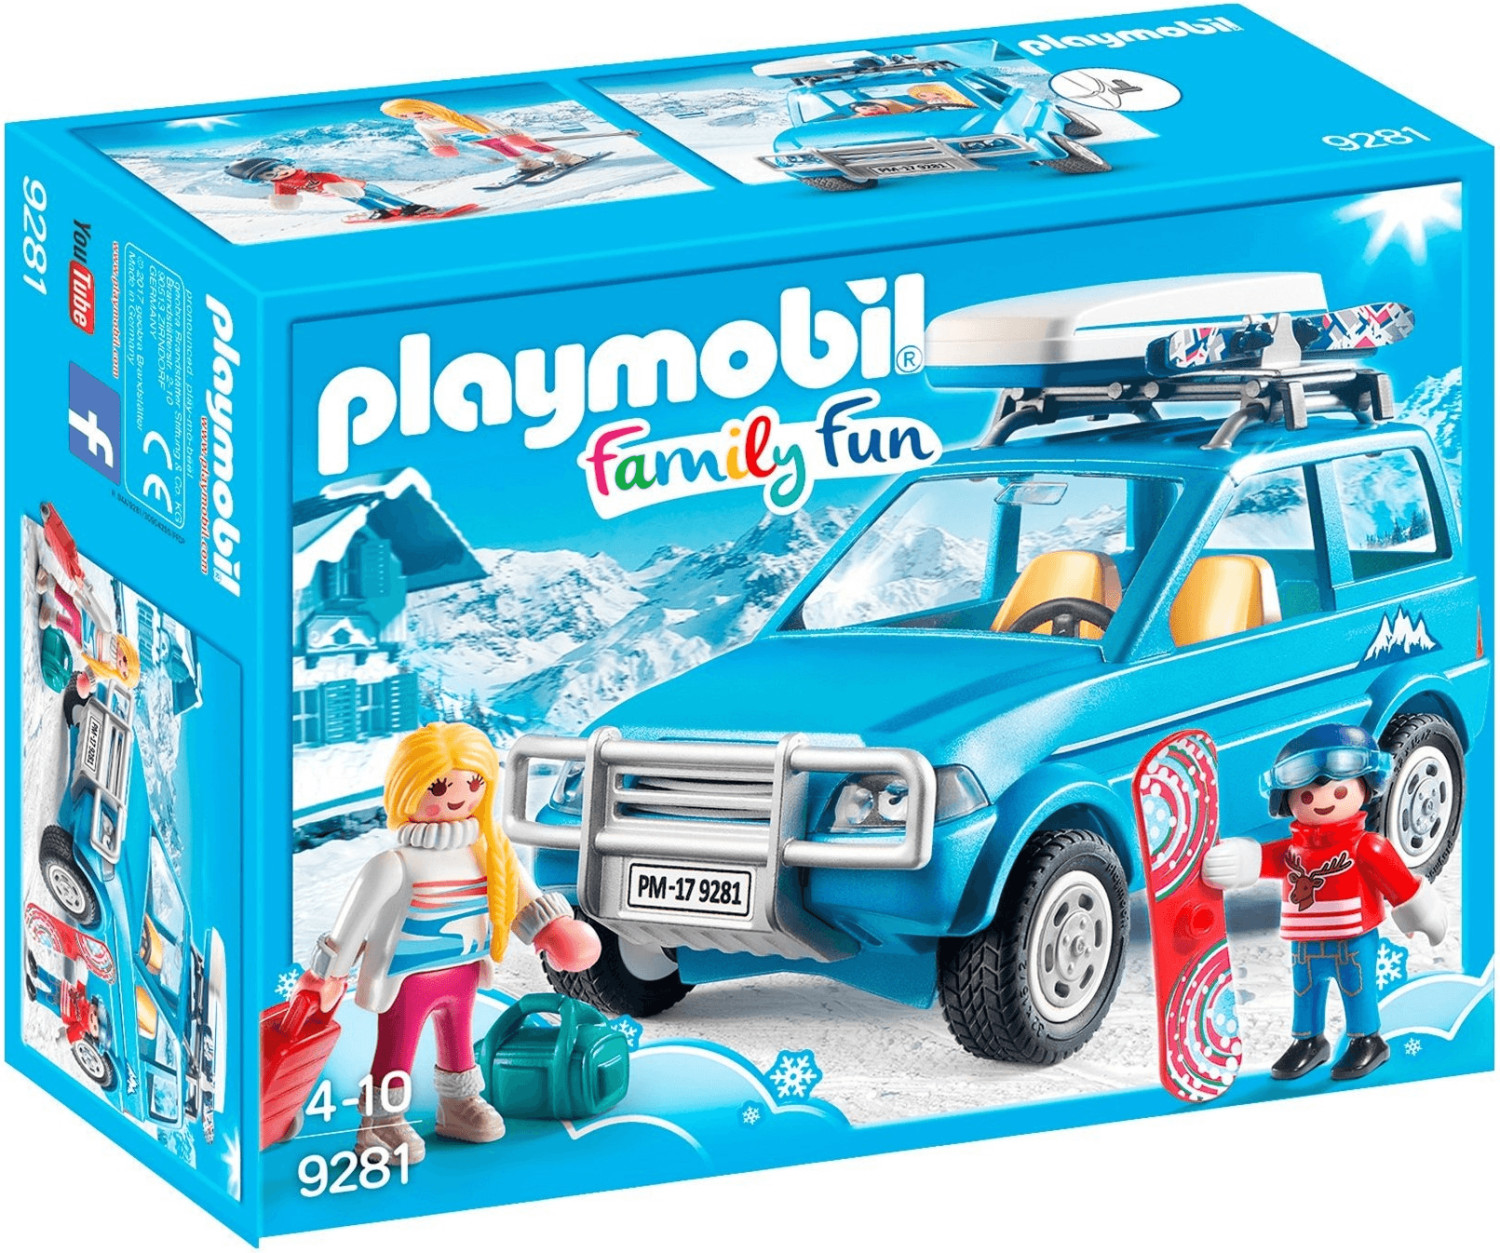 Playmobil Family Fun - Auto mit Dachbox (9281)